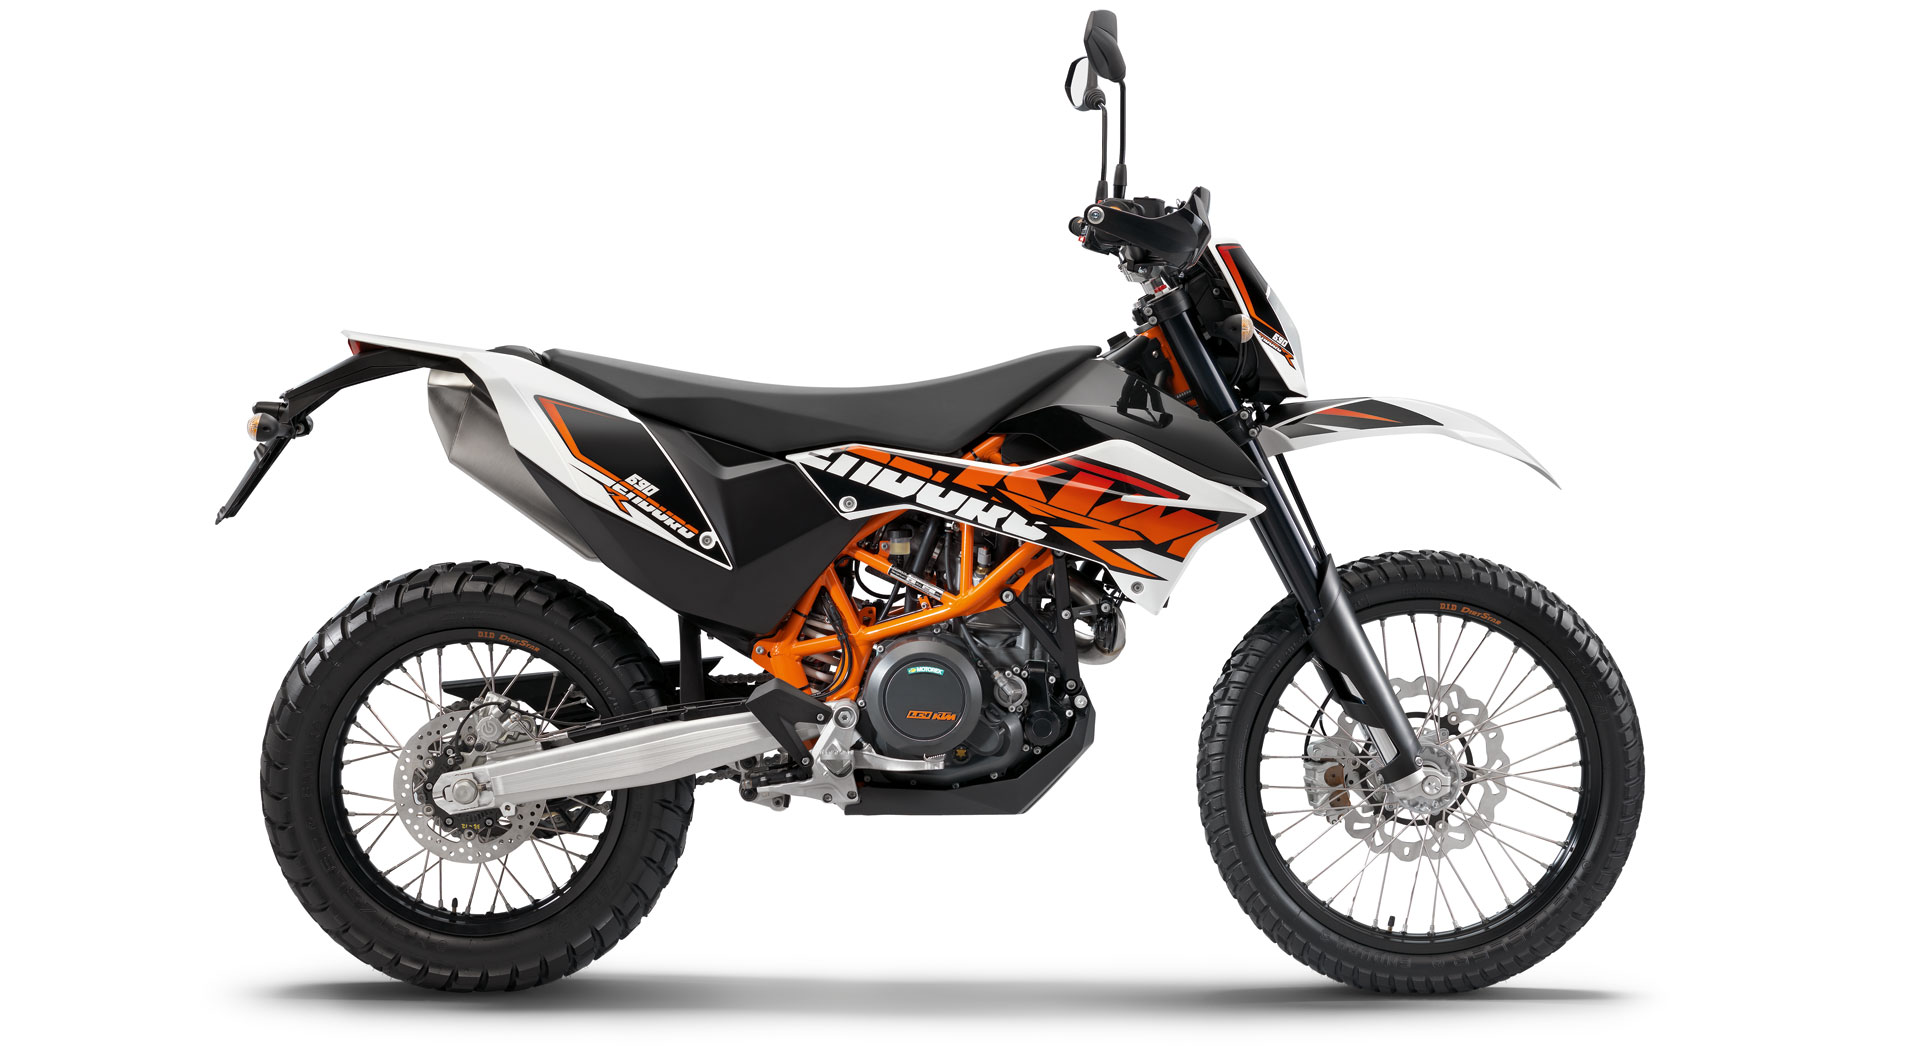 ktm 690 smc r fiche technique avis et prix car interior design. Black Bedroom Furniture Sets. Home Design Ideas